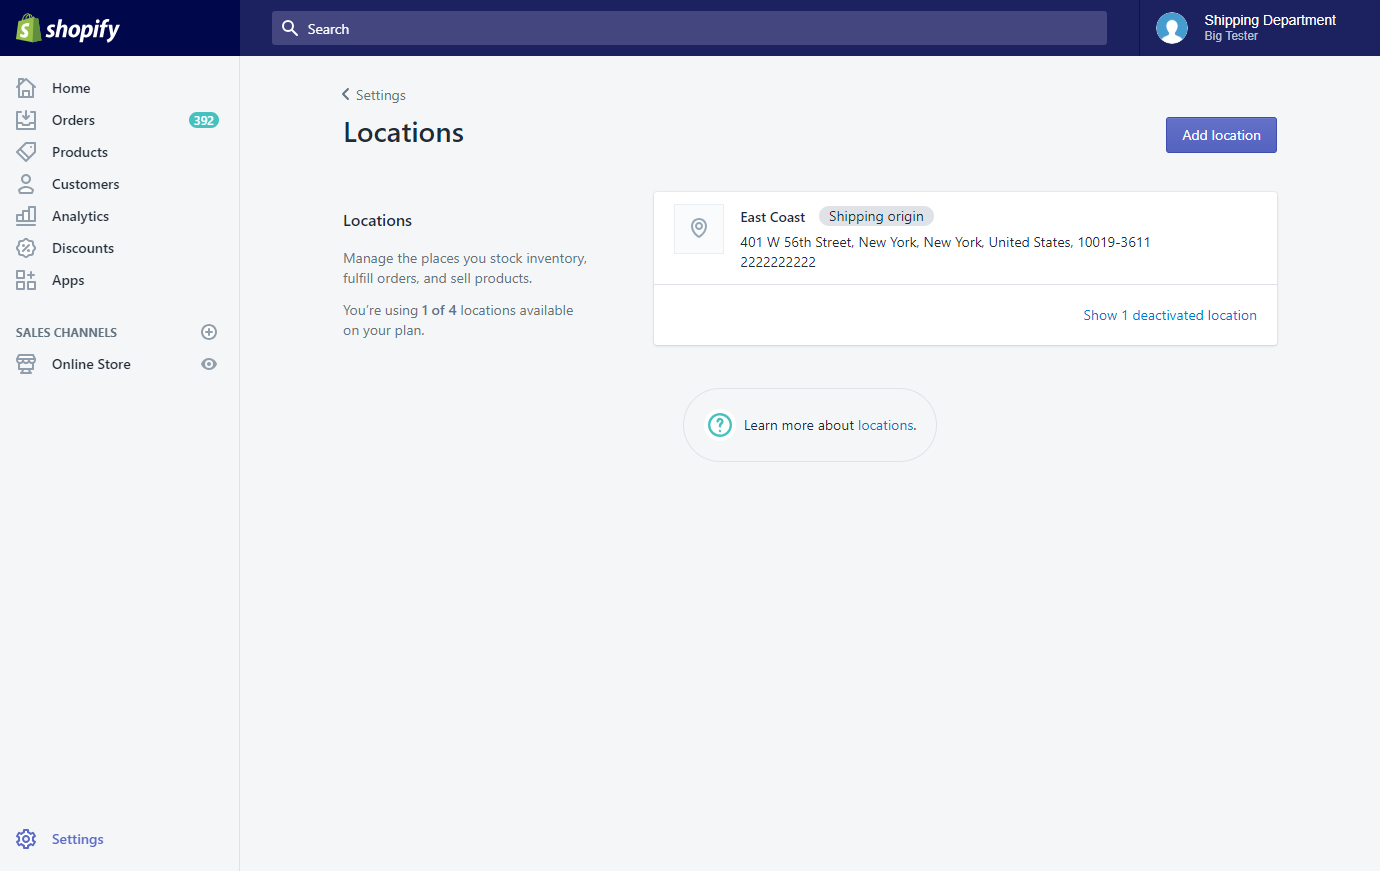 Shopify] Can I use multiple locations? - Knowledge Base